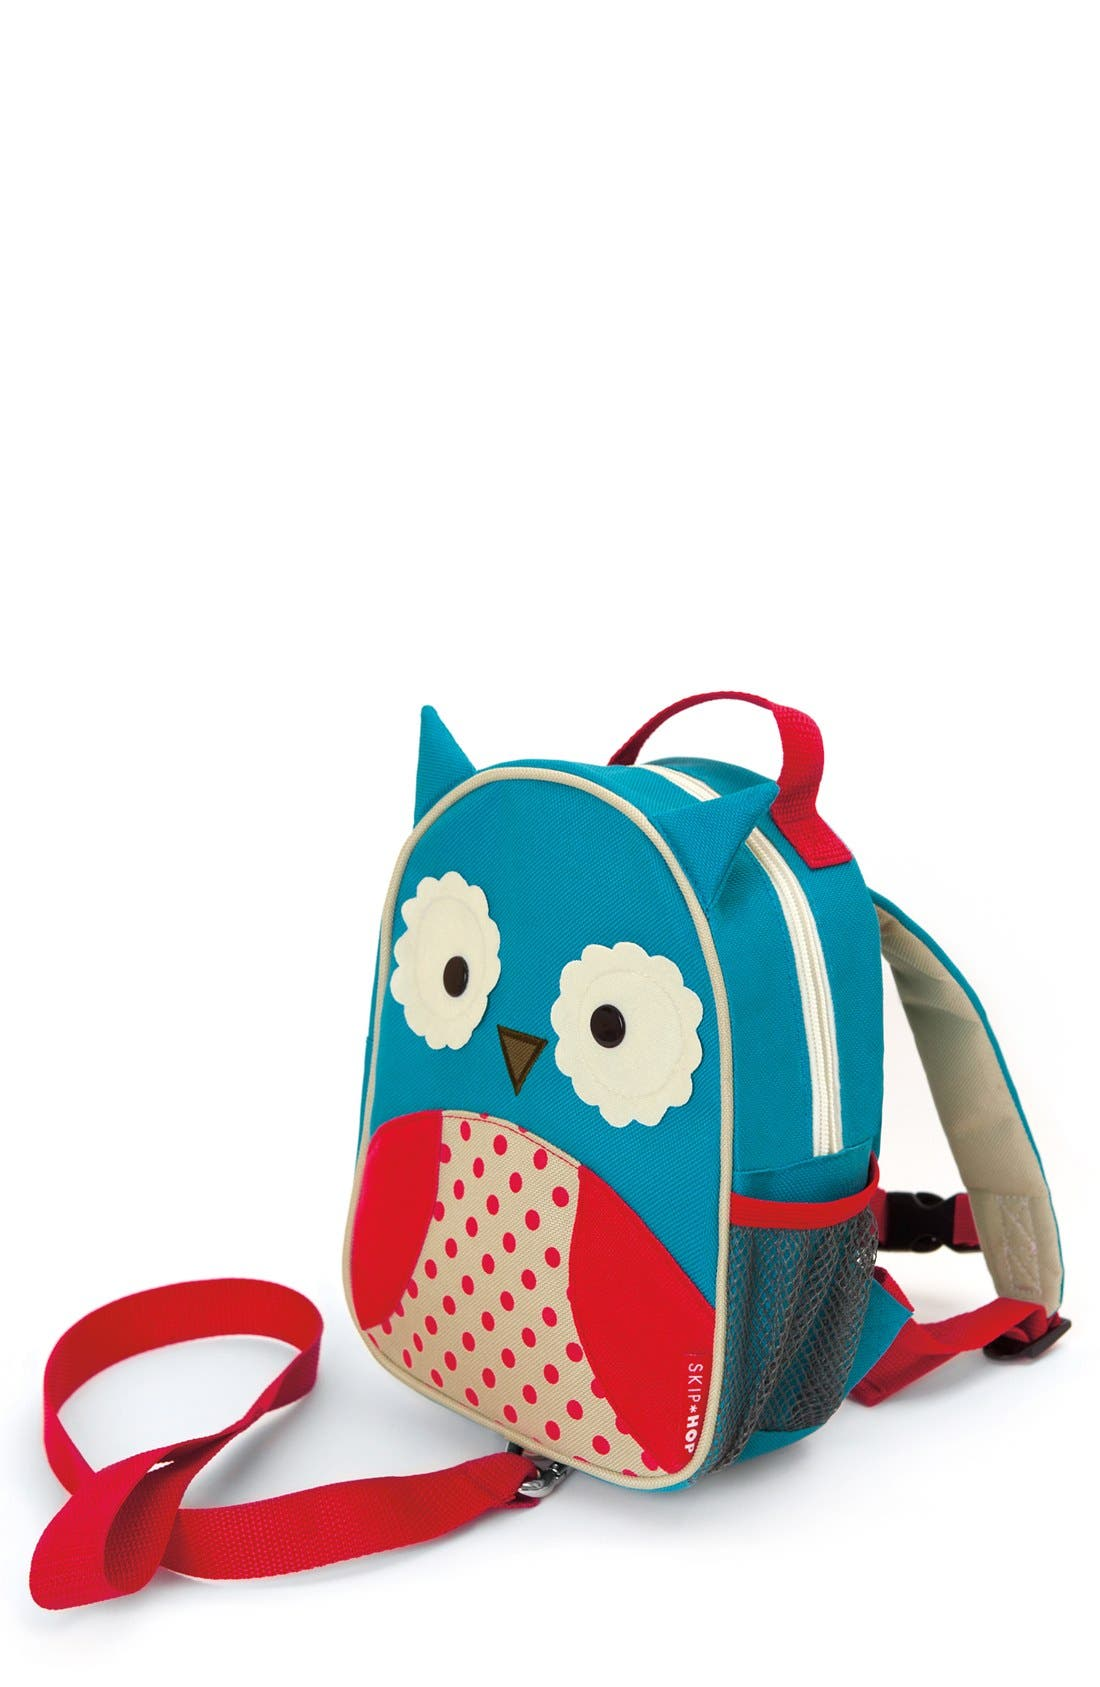 SKIP HOP 'Zoo' Safety Harness Backpack